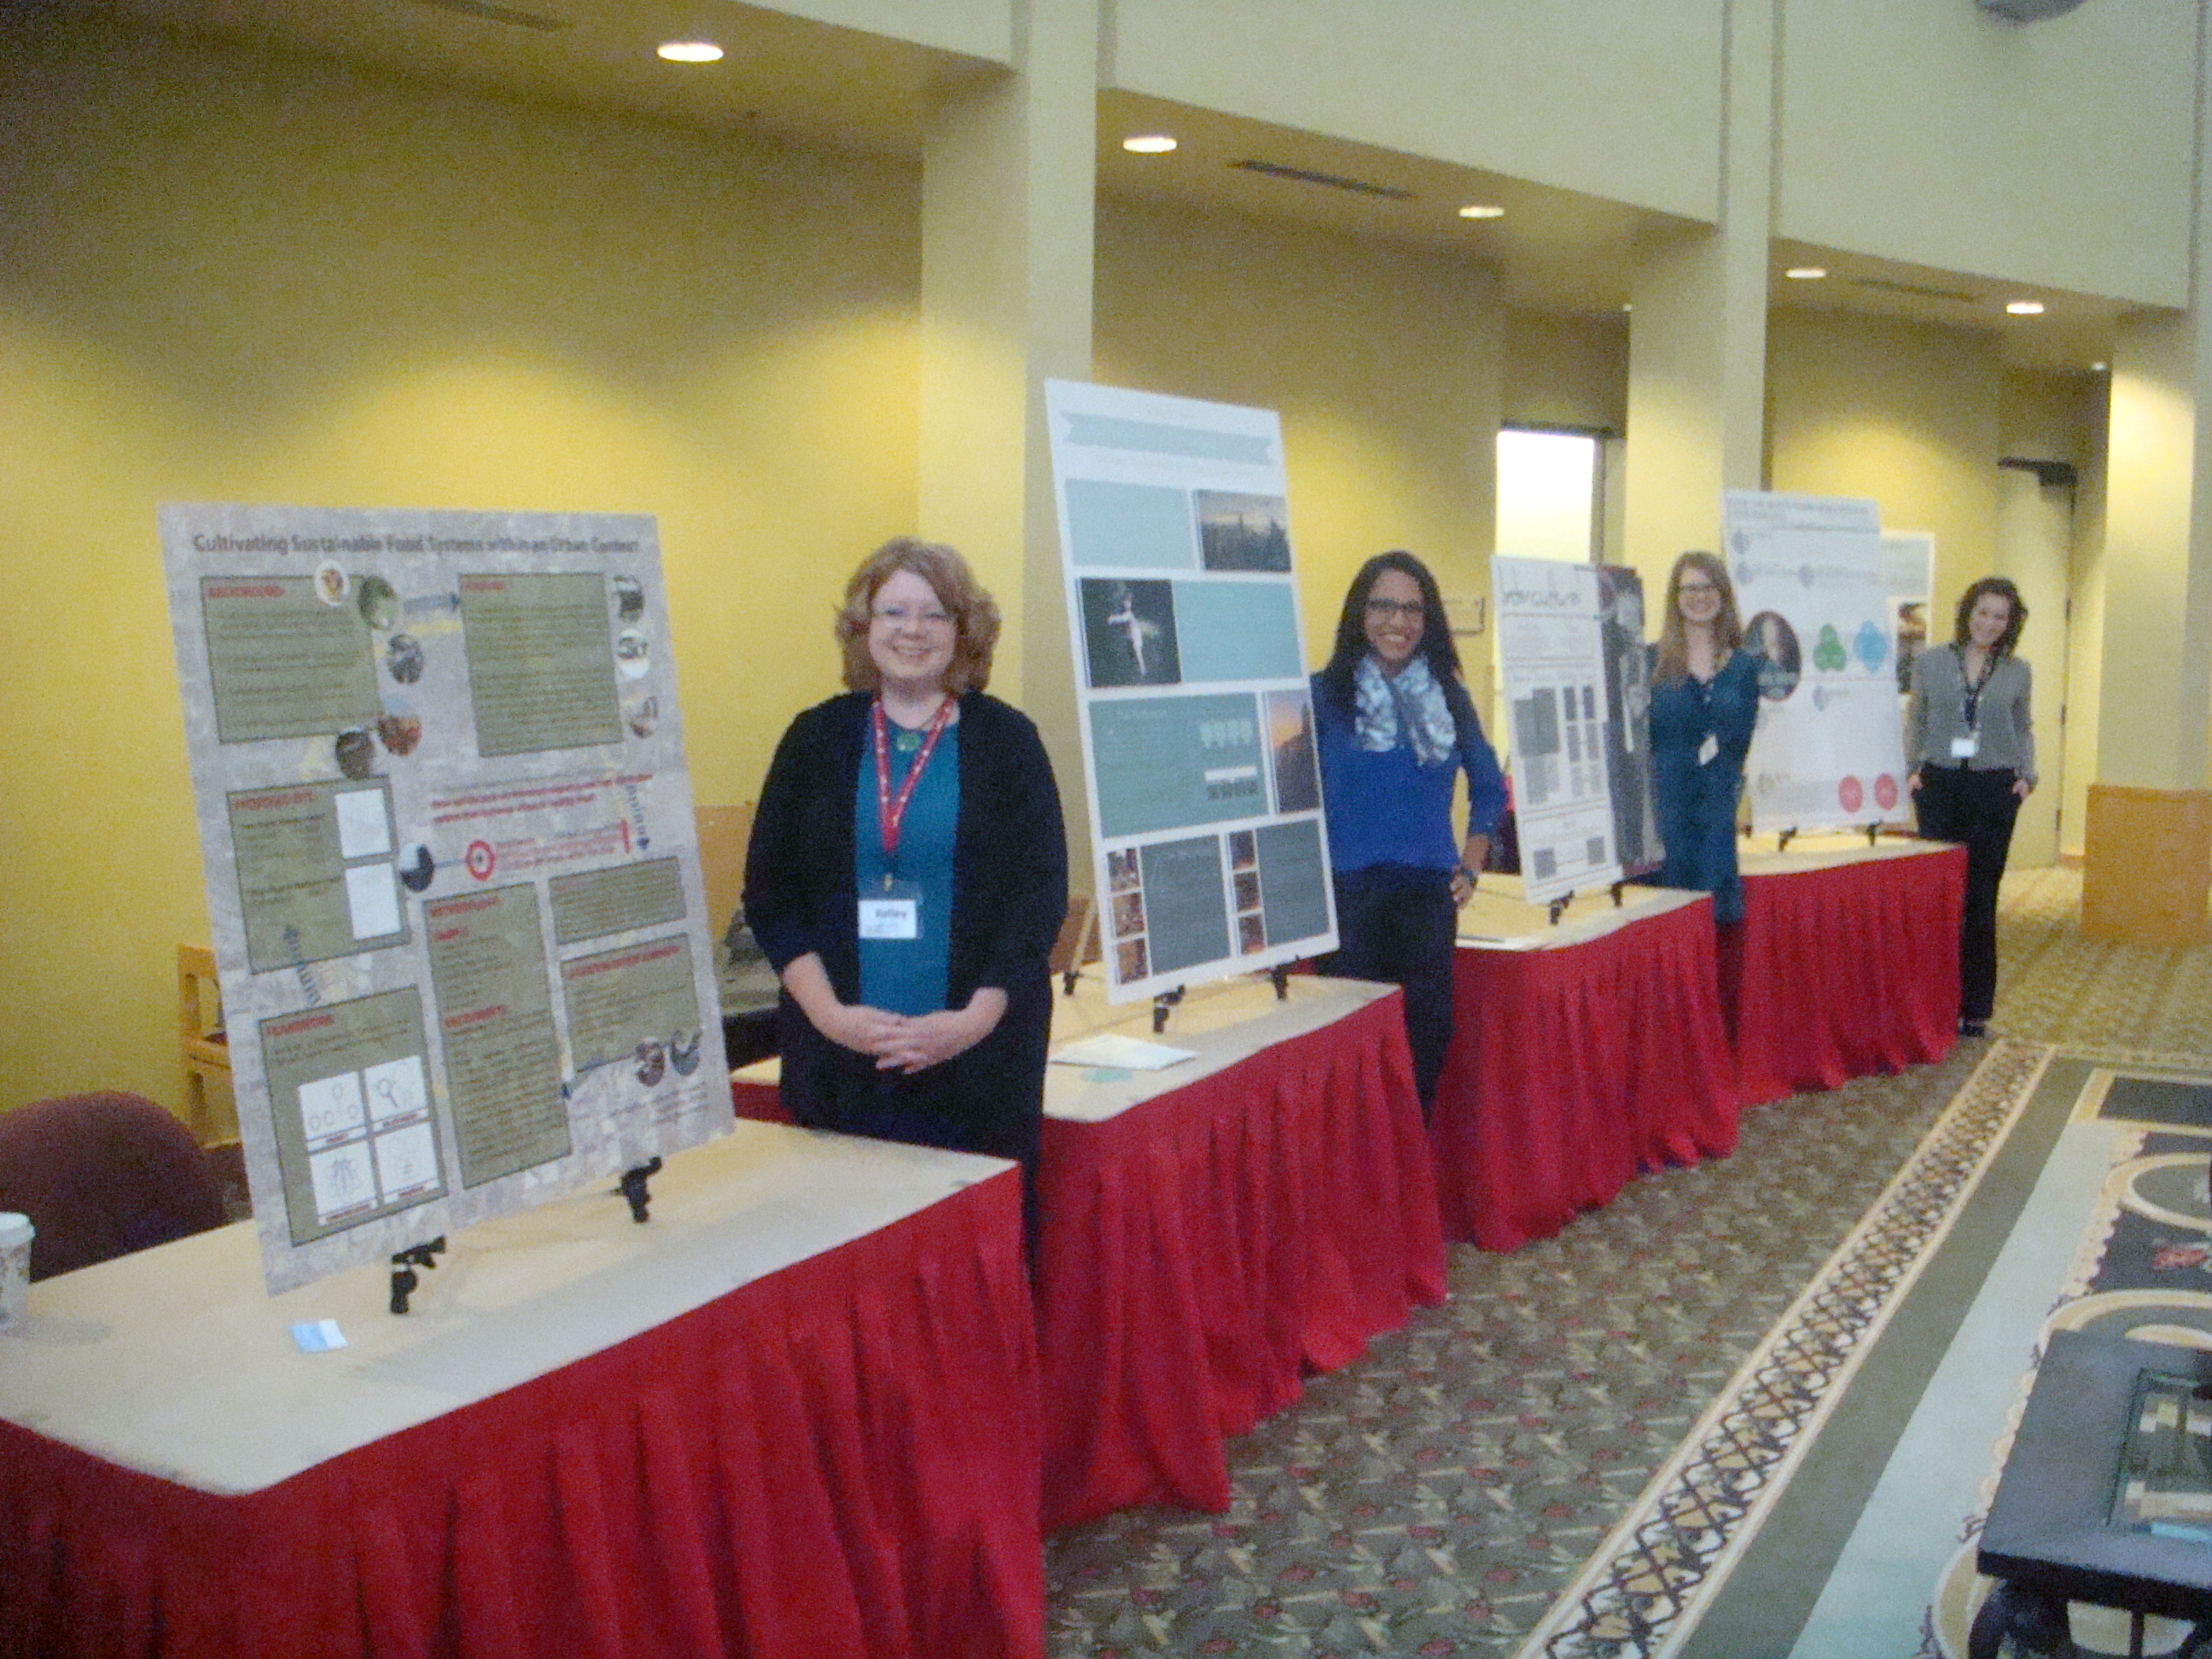 Graduate Students With Posters